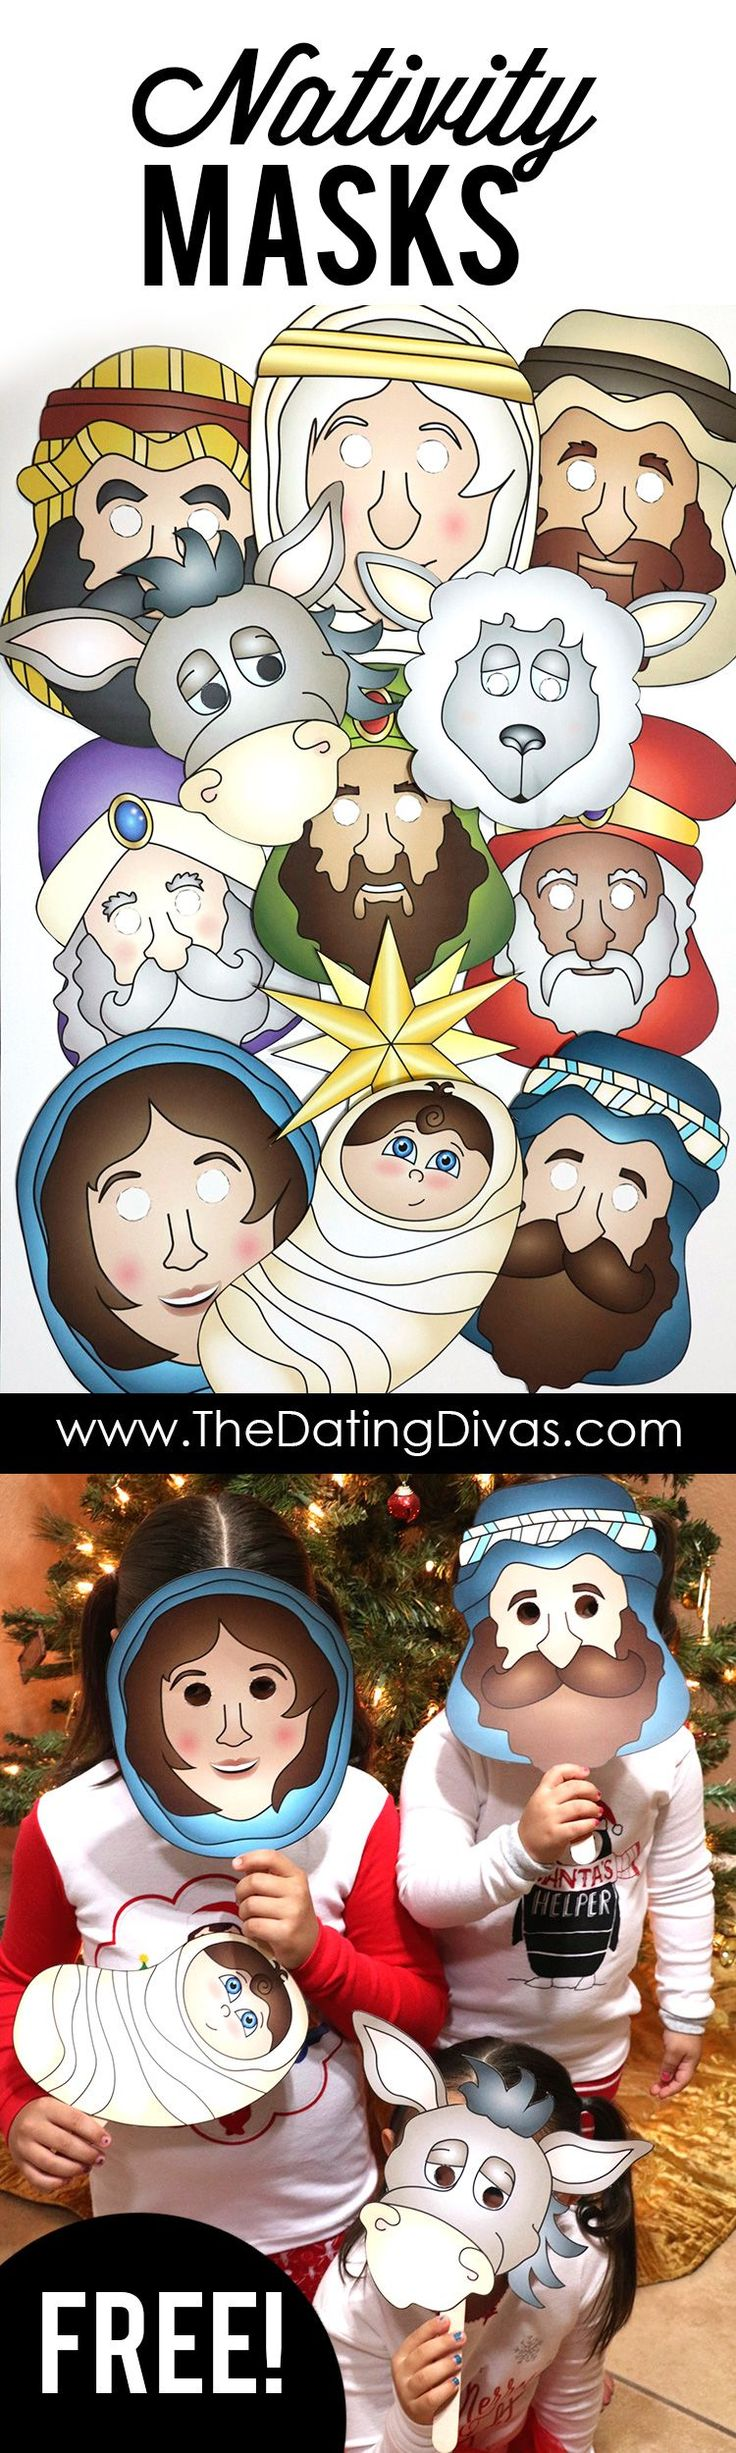 Free printable nativity masks to act out the nativity story as a family on Christmas Eve. This is my favorite family Christmas tradition!! And this post has 15 PAGES of nativity masks and props! www.TheDatingDivas.com